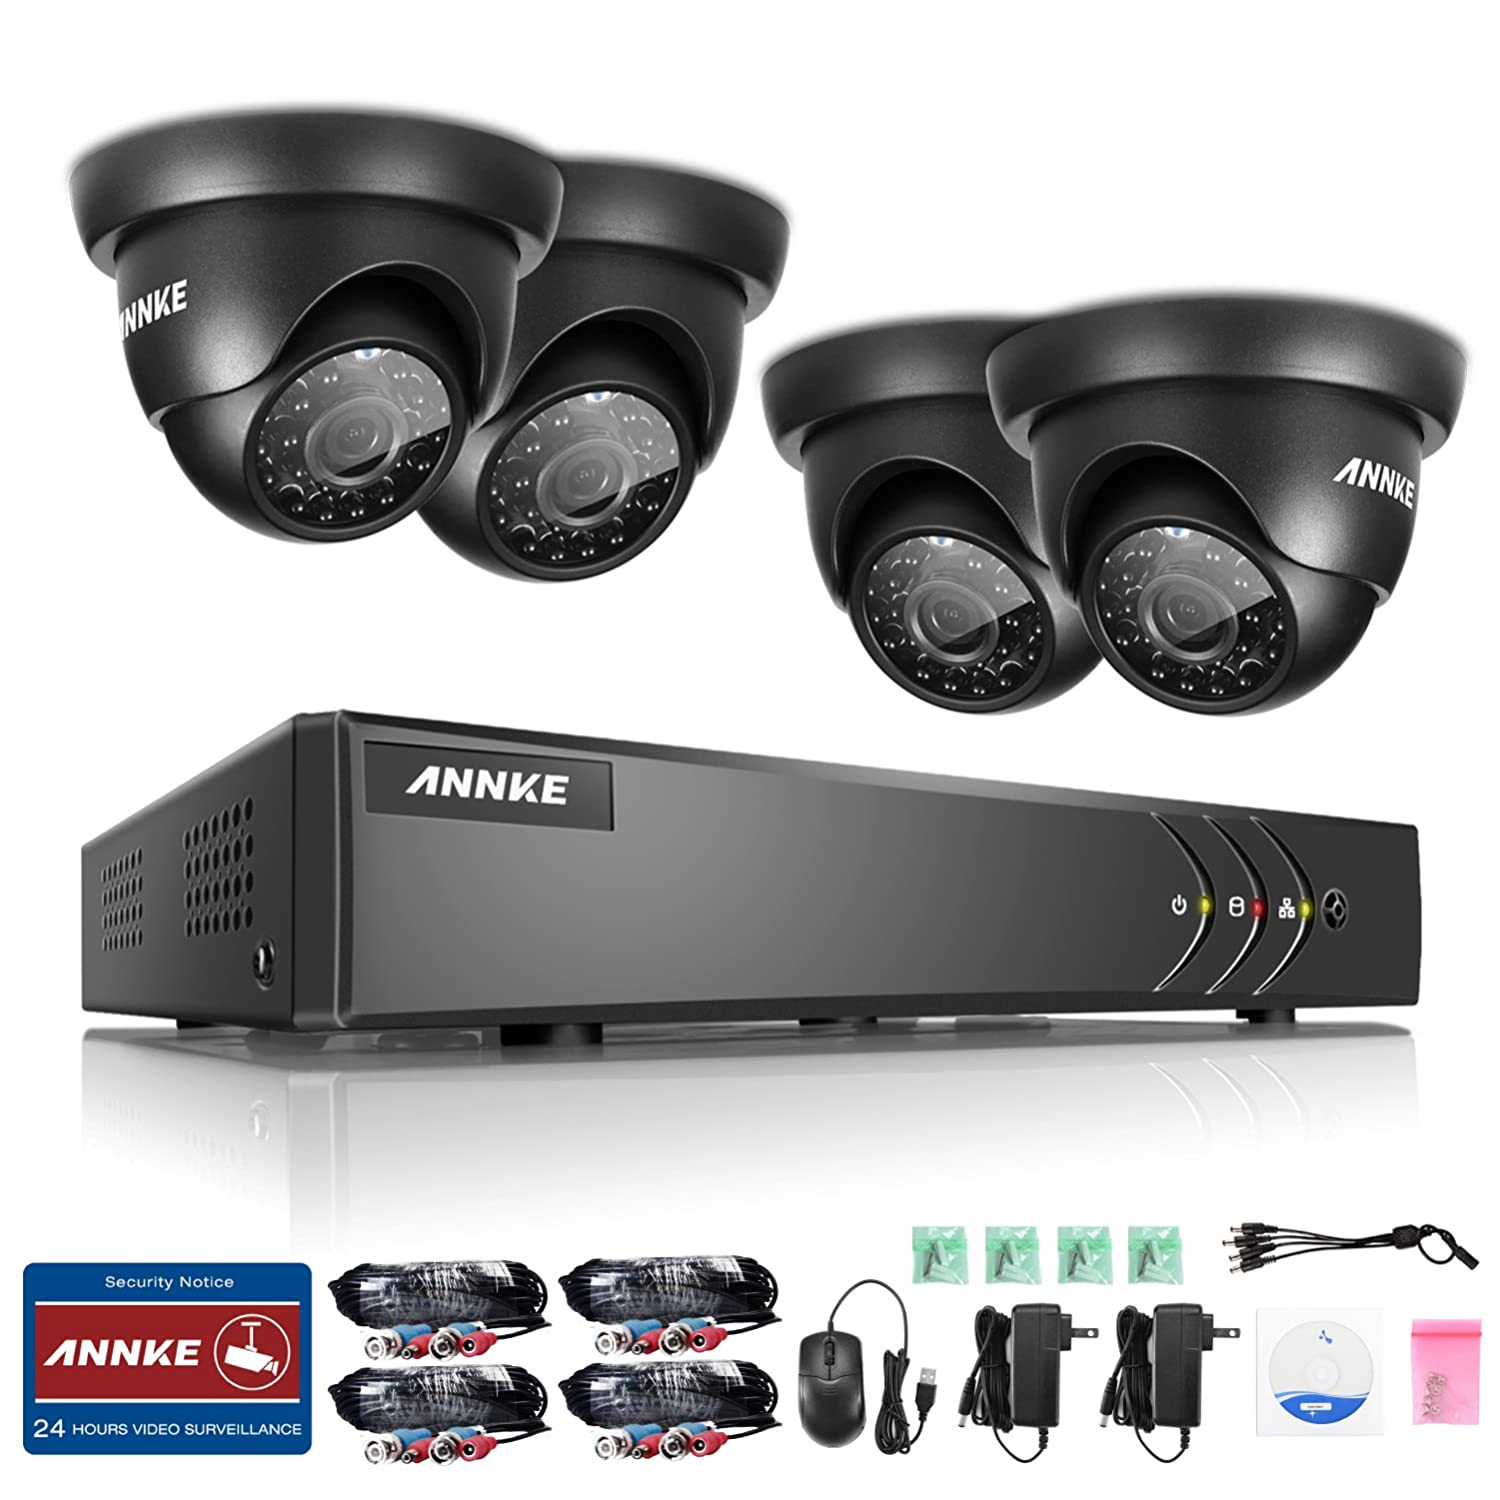 We Analyzed 67 Reviews For ANNKE 8CH HD-TVI Security Camera